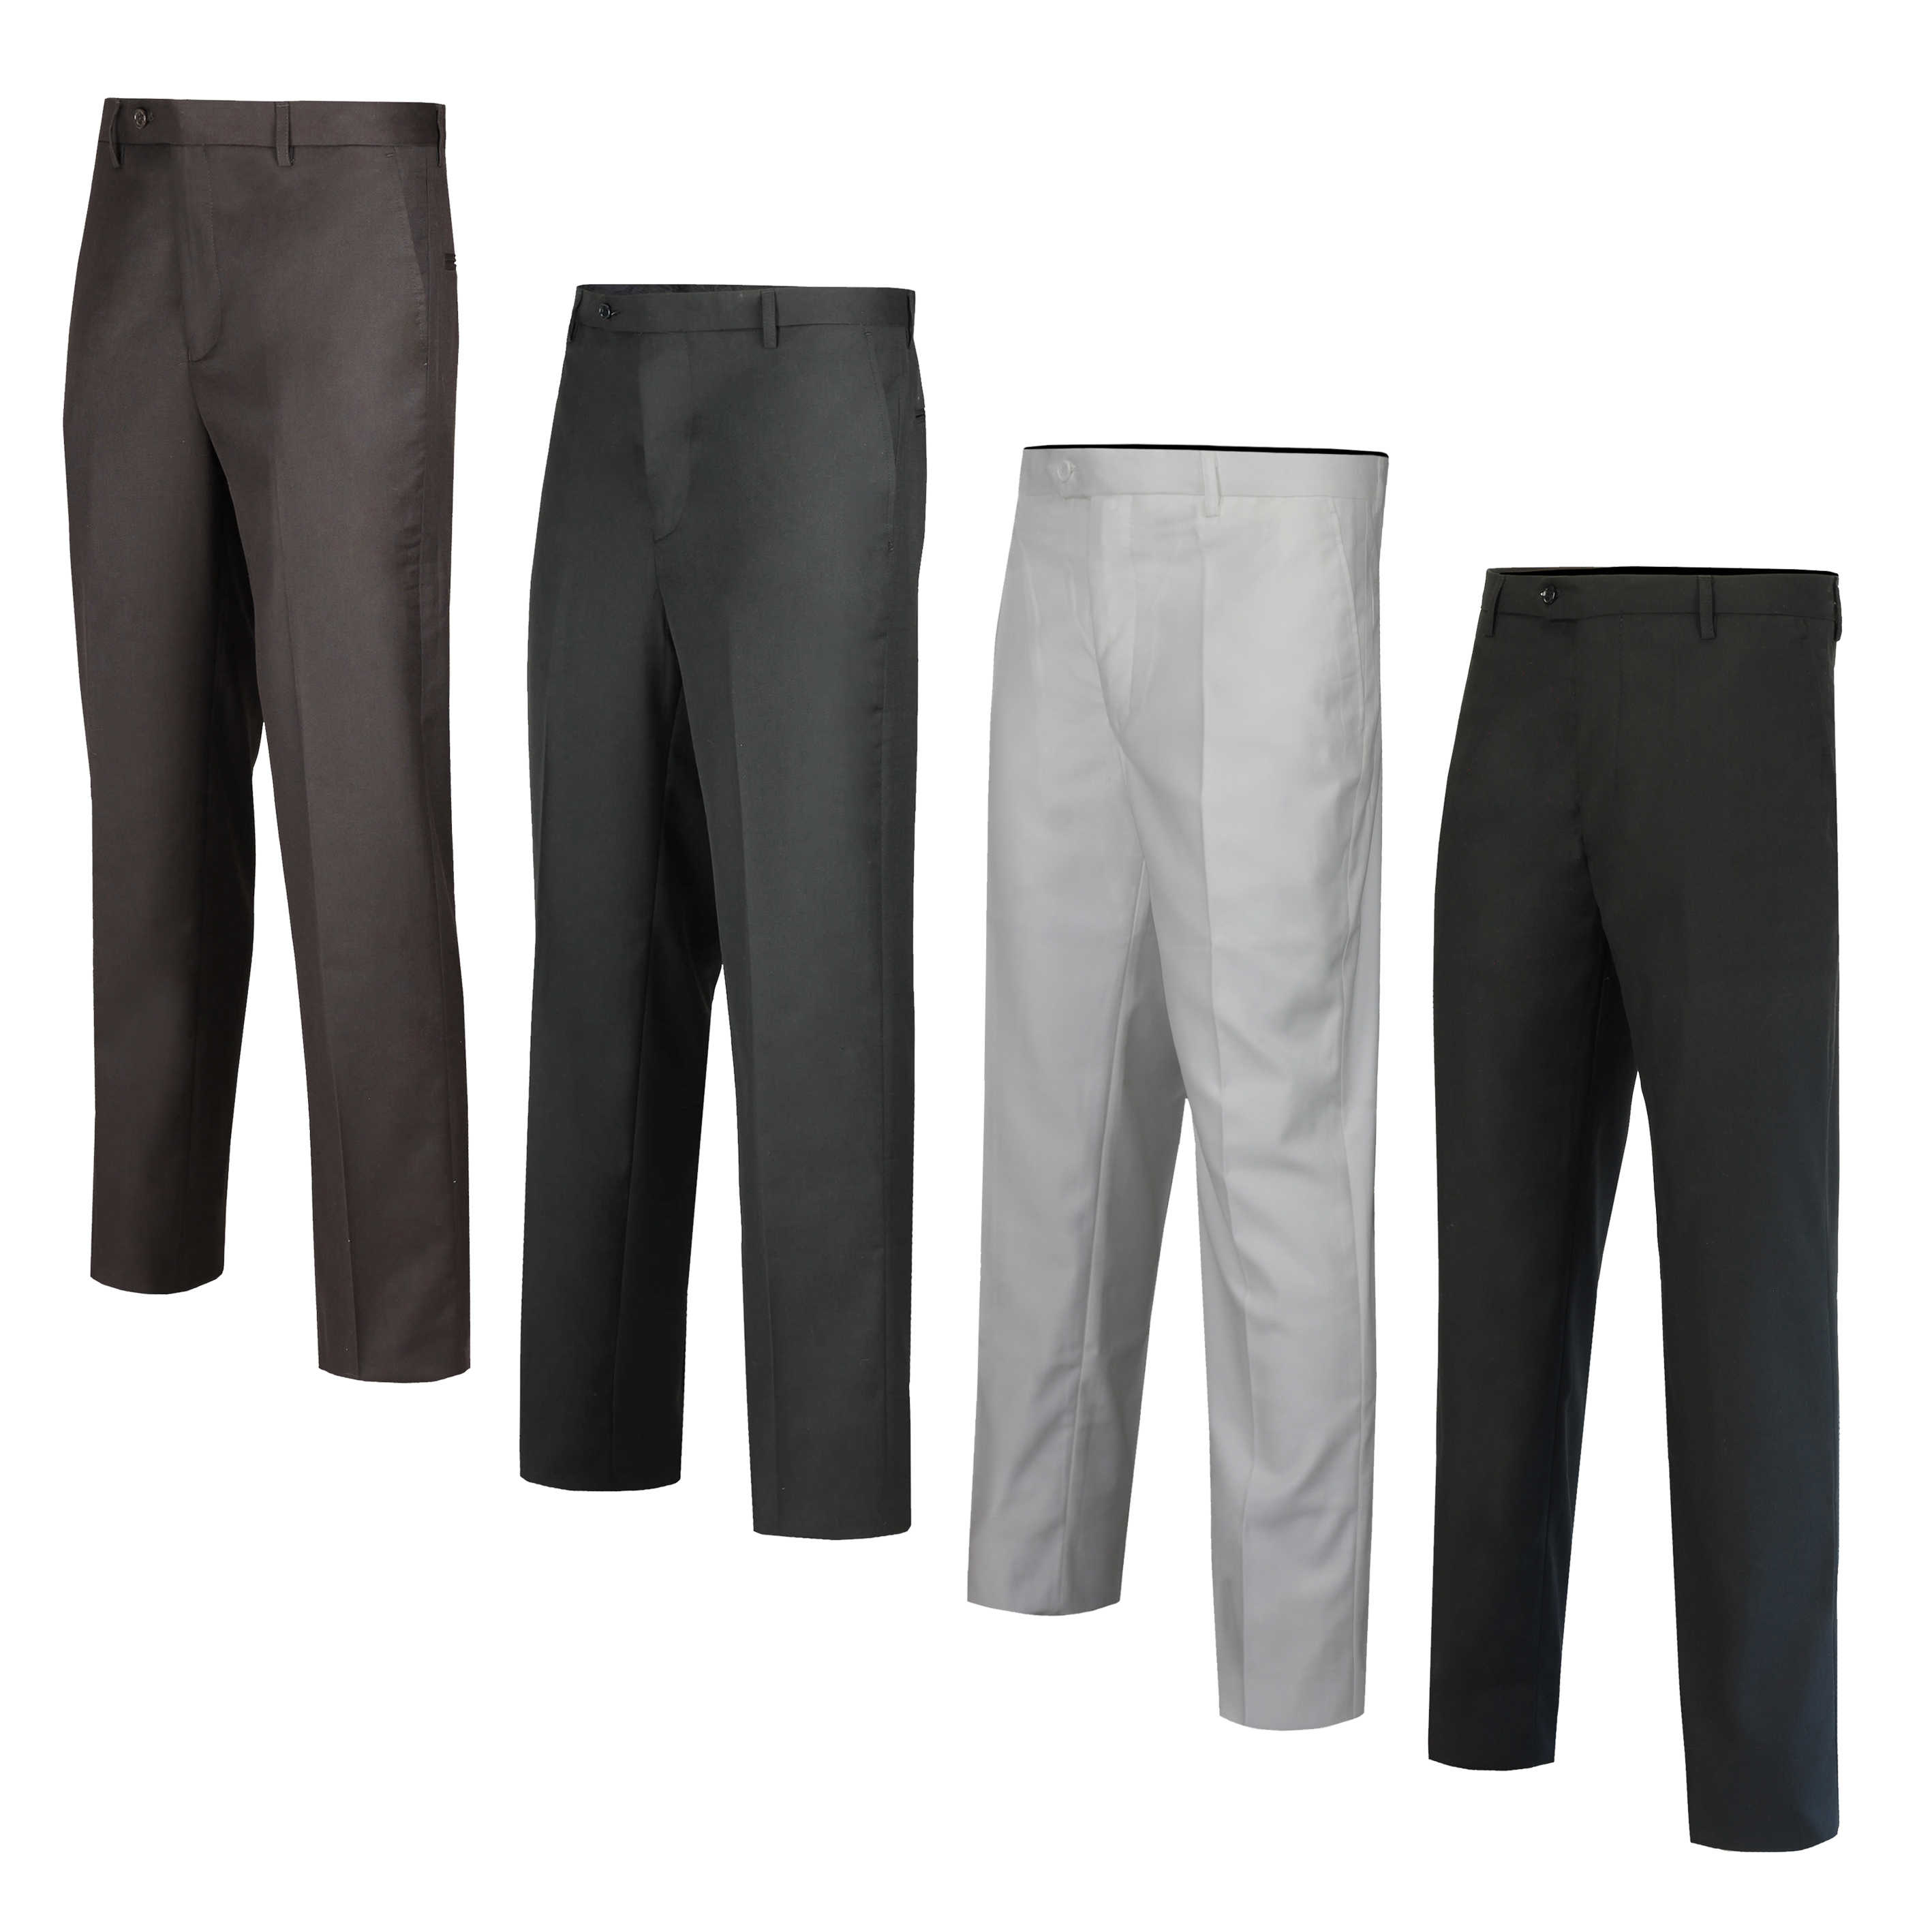 Mens Office Trousers Formal Smart Casual Work Trousers Business Dress Pants